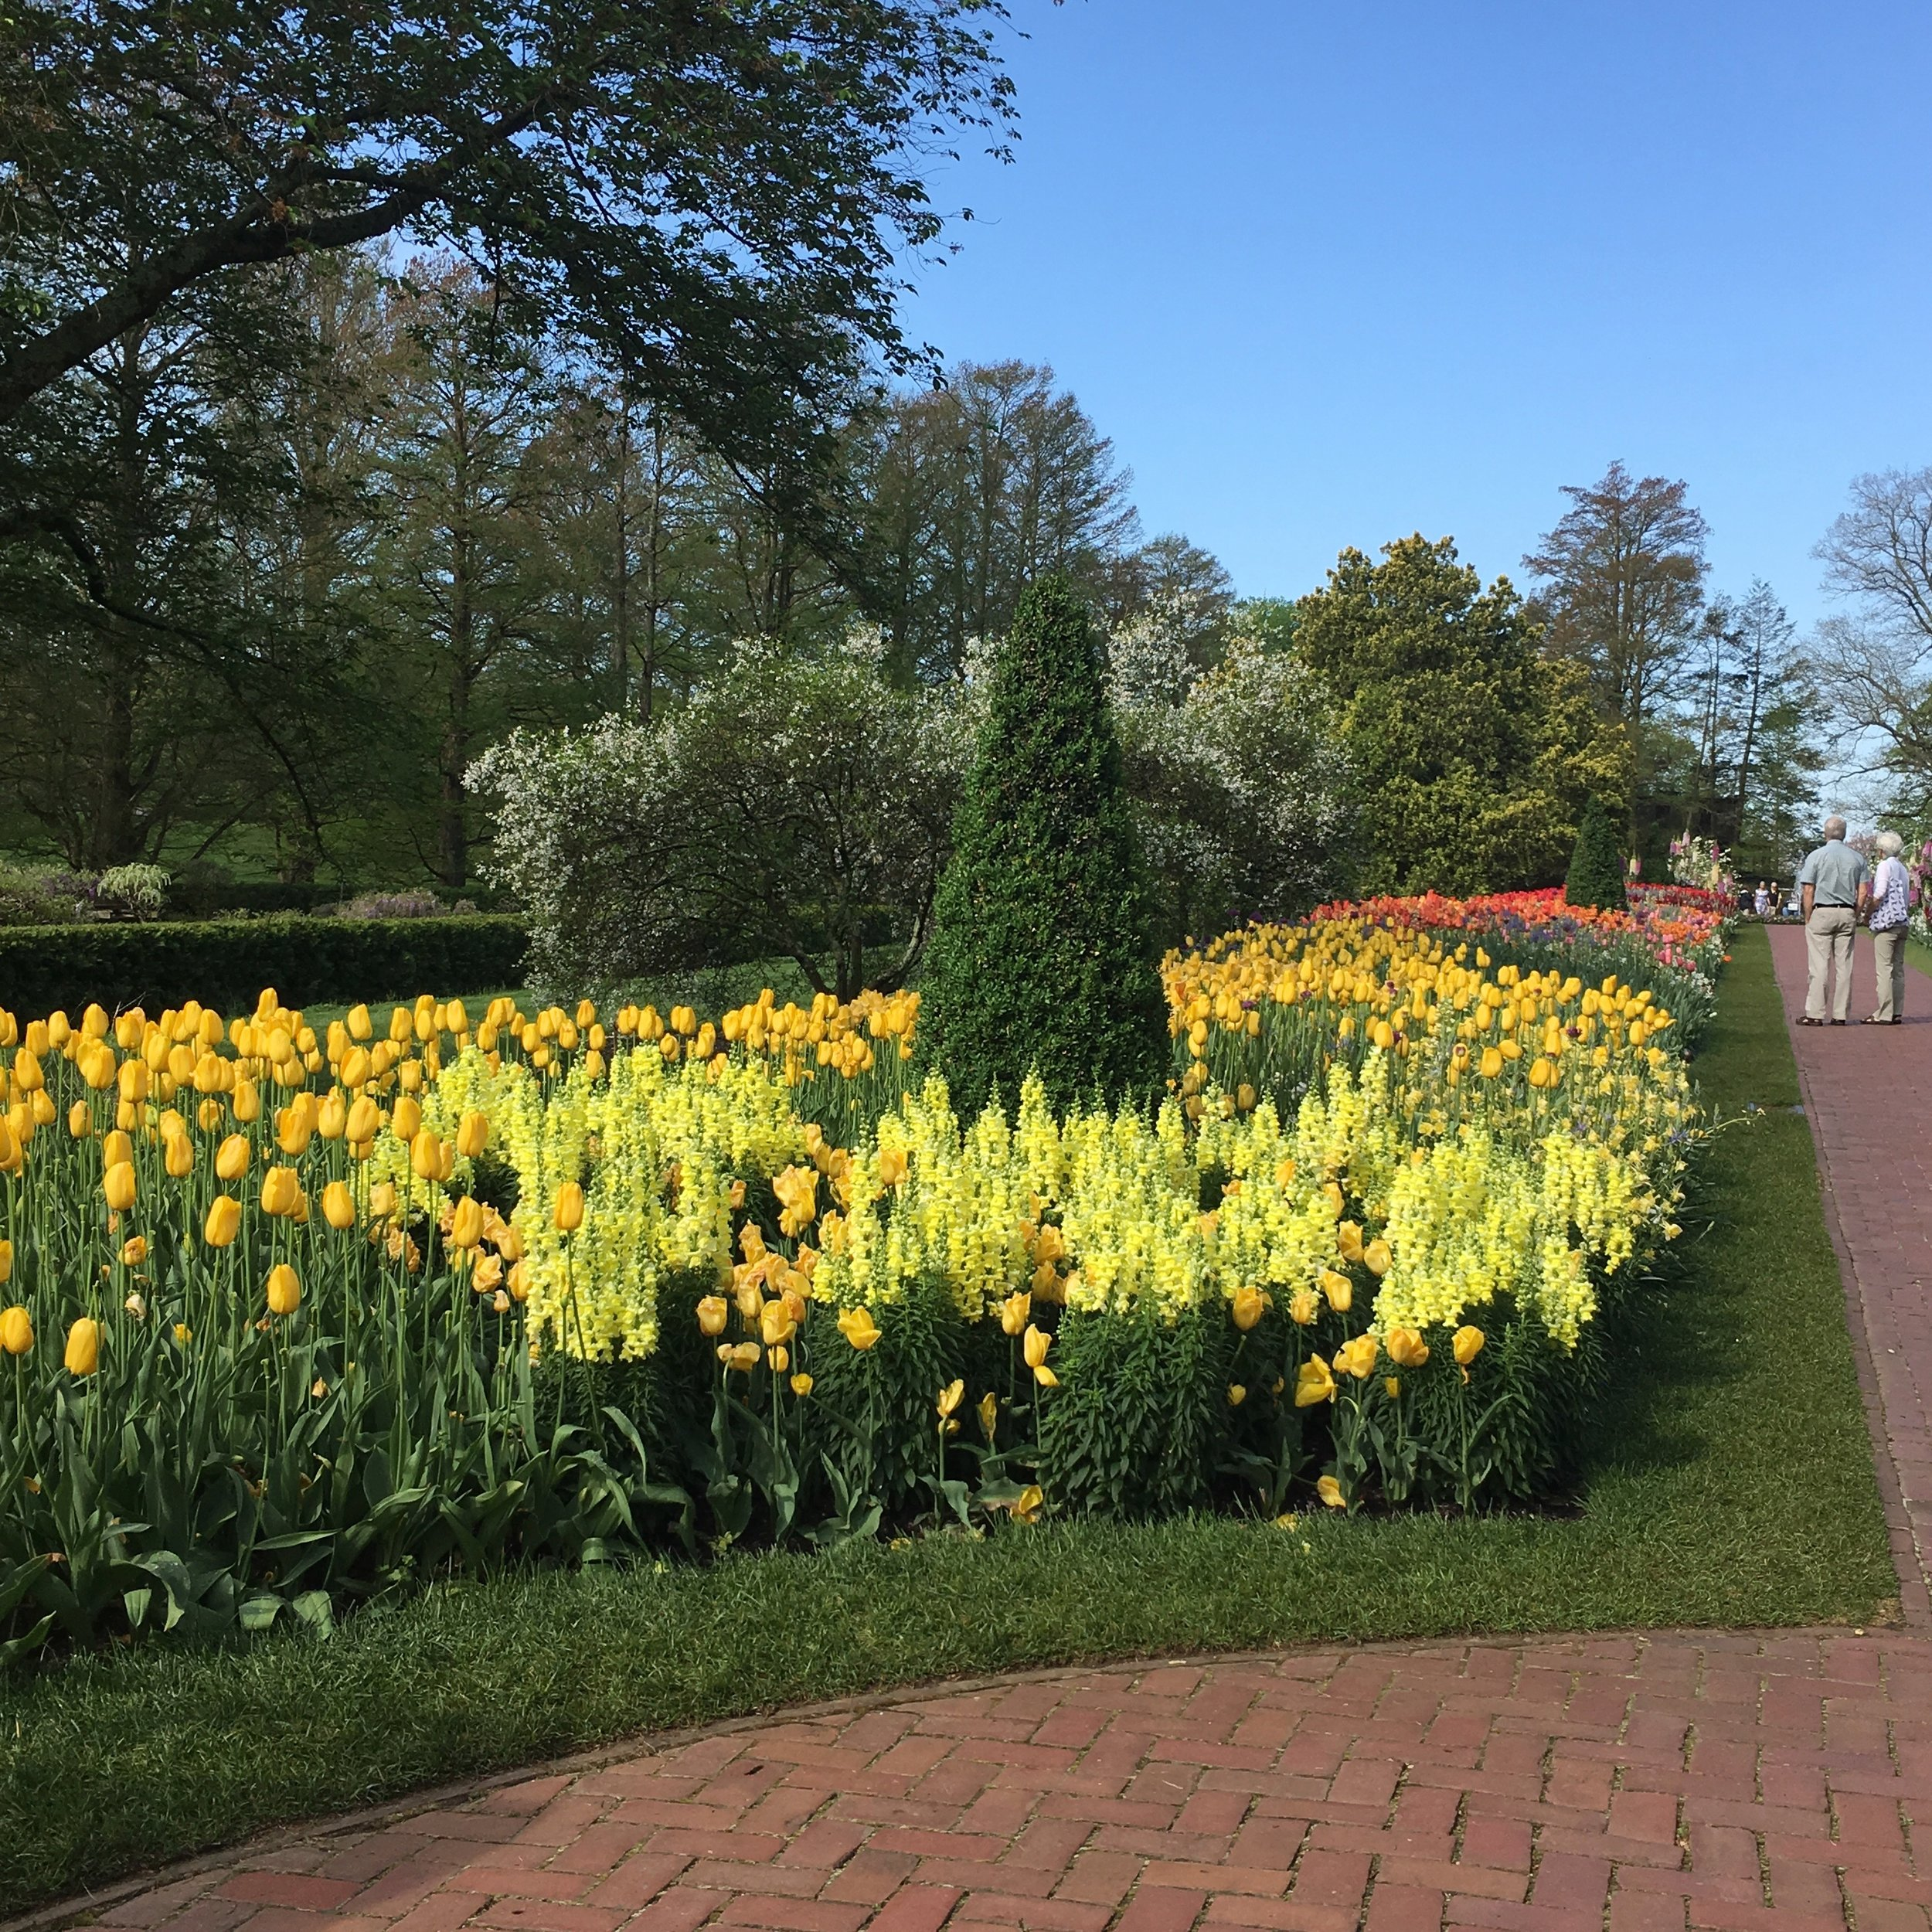 Taking a walk - through Longwood Gardens is also great for both artistic and gardening inspiration.